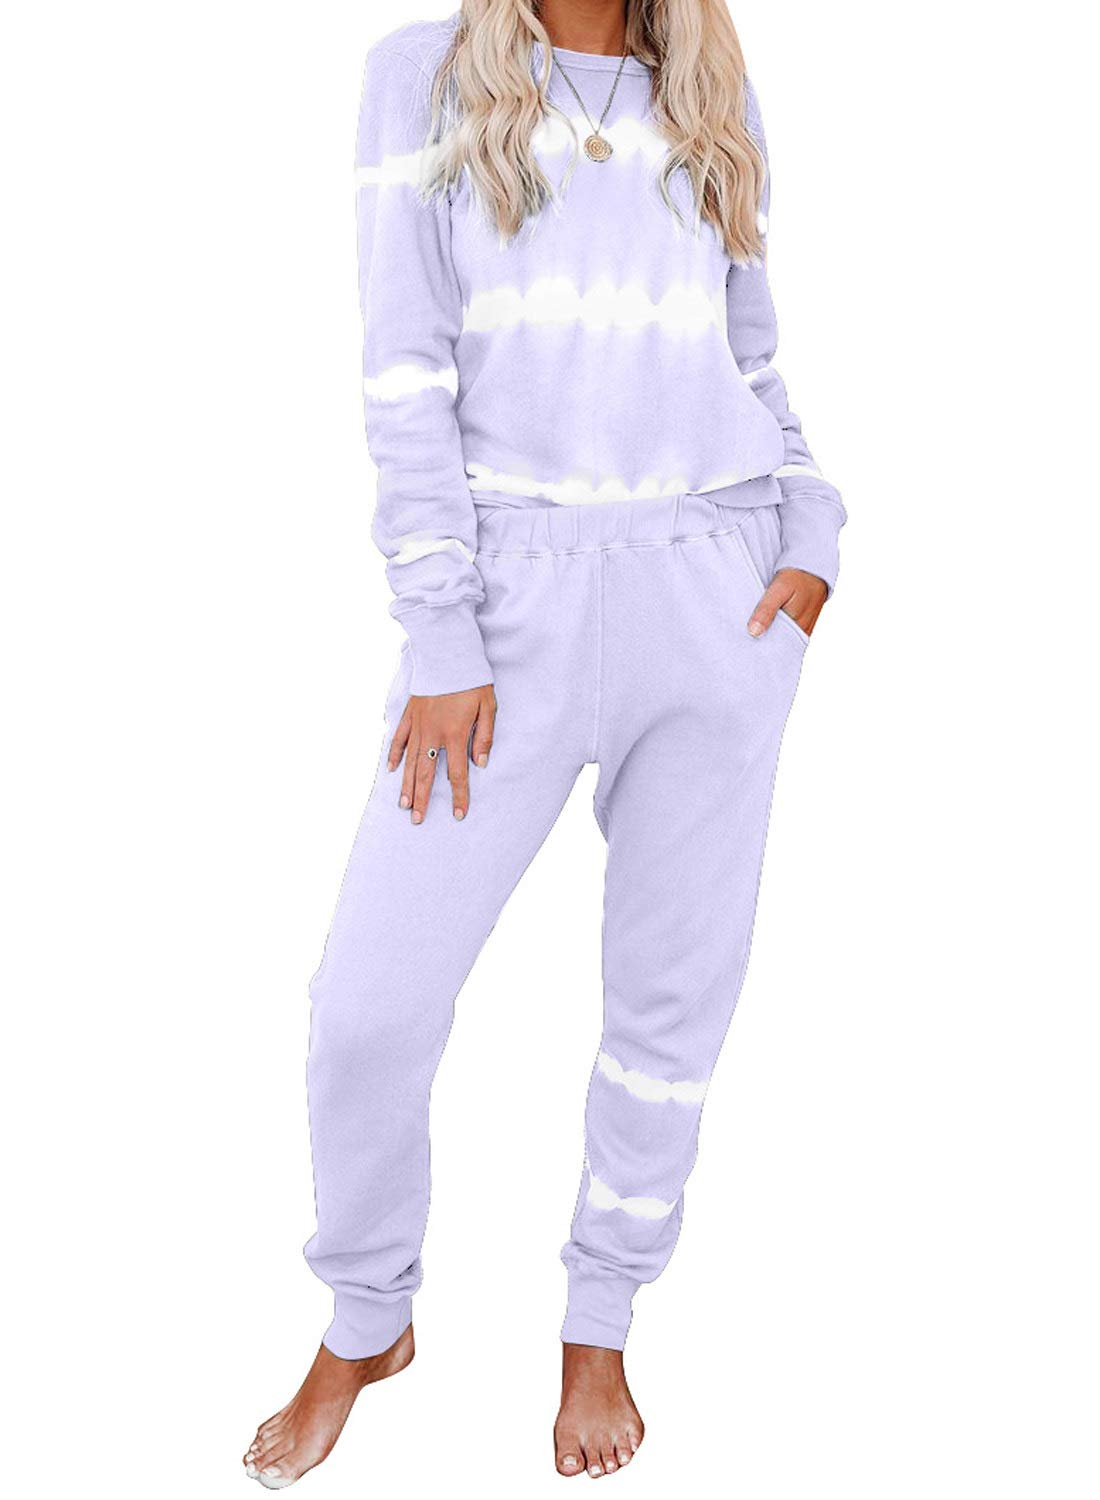 Dearlovers Womens Casual Two Piece Outfit Long Sleeve Tie Dye Print Shirt with Pants Lounge Sleepwear